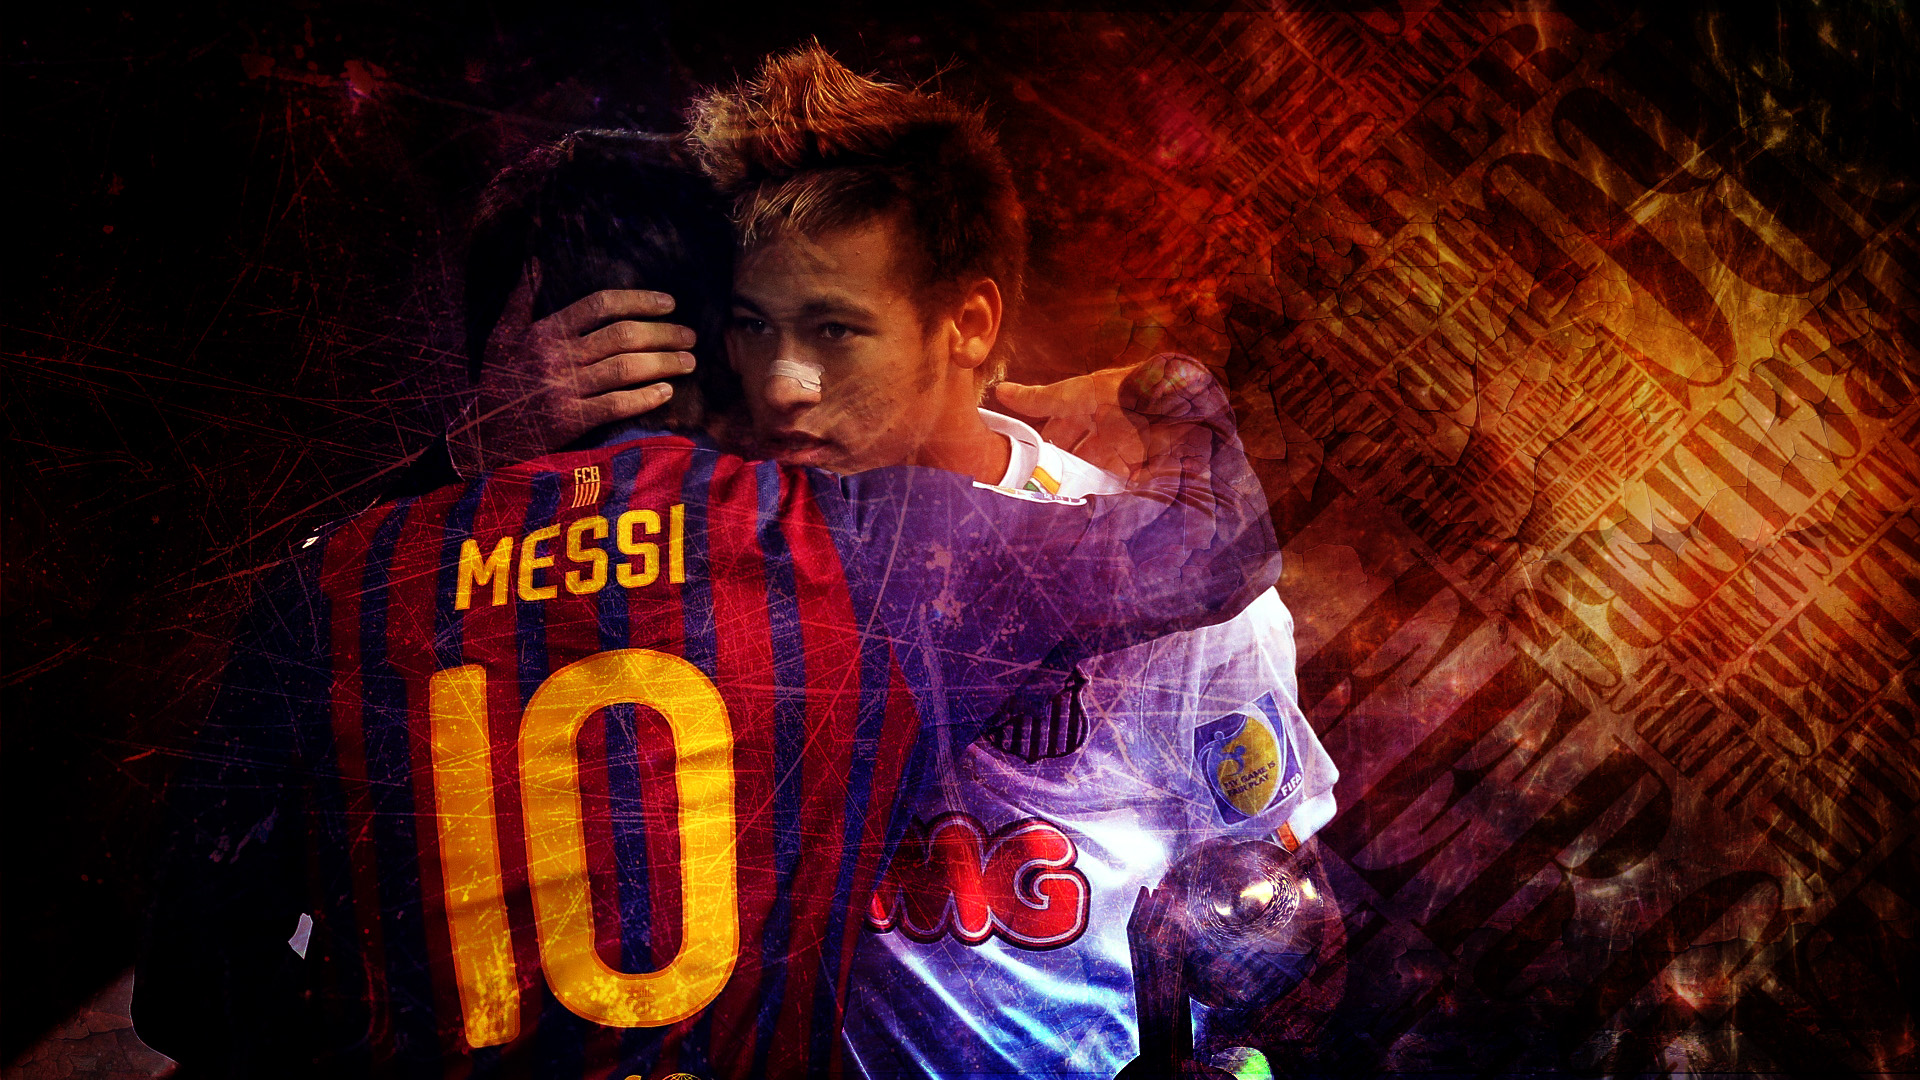 Messi and Neymar Wallpaper HD - WallpaperSafari